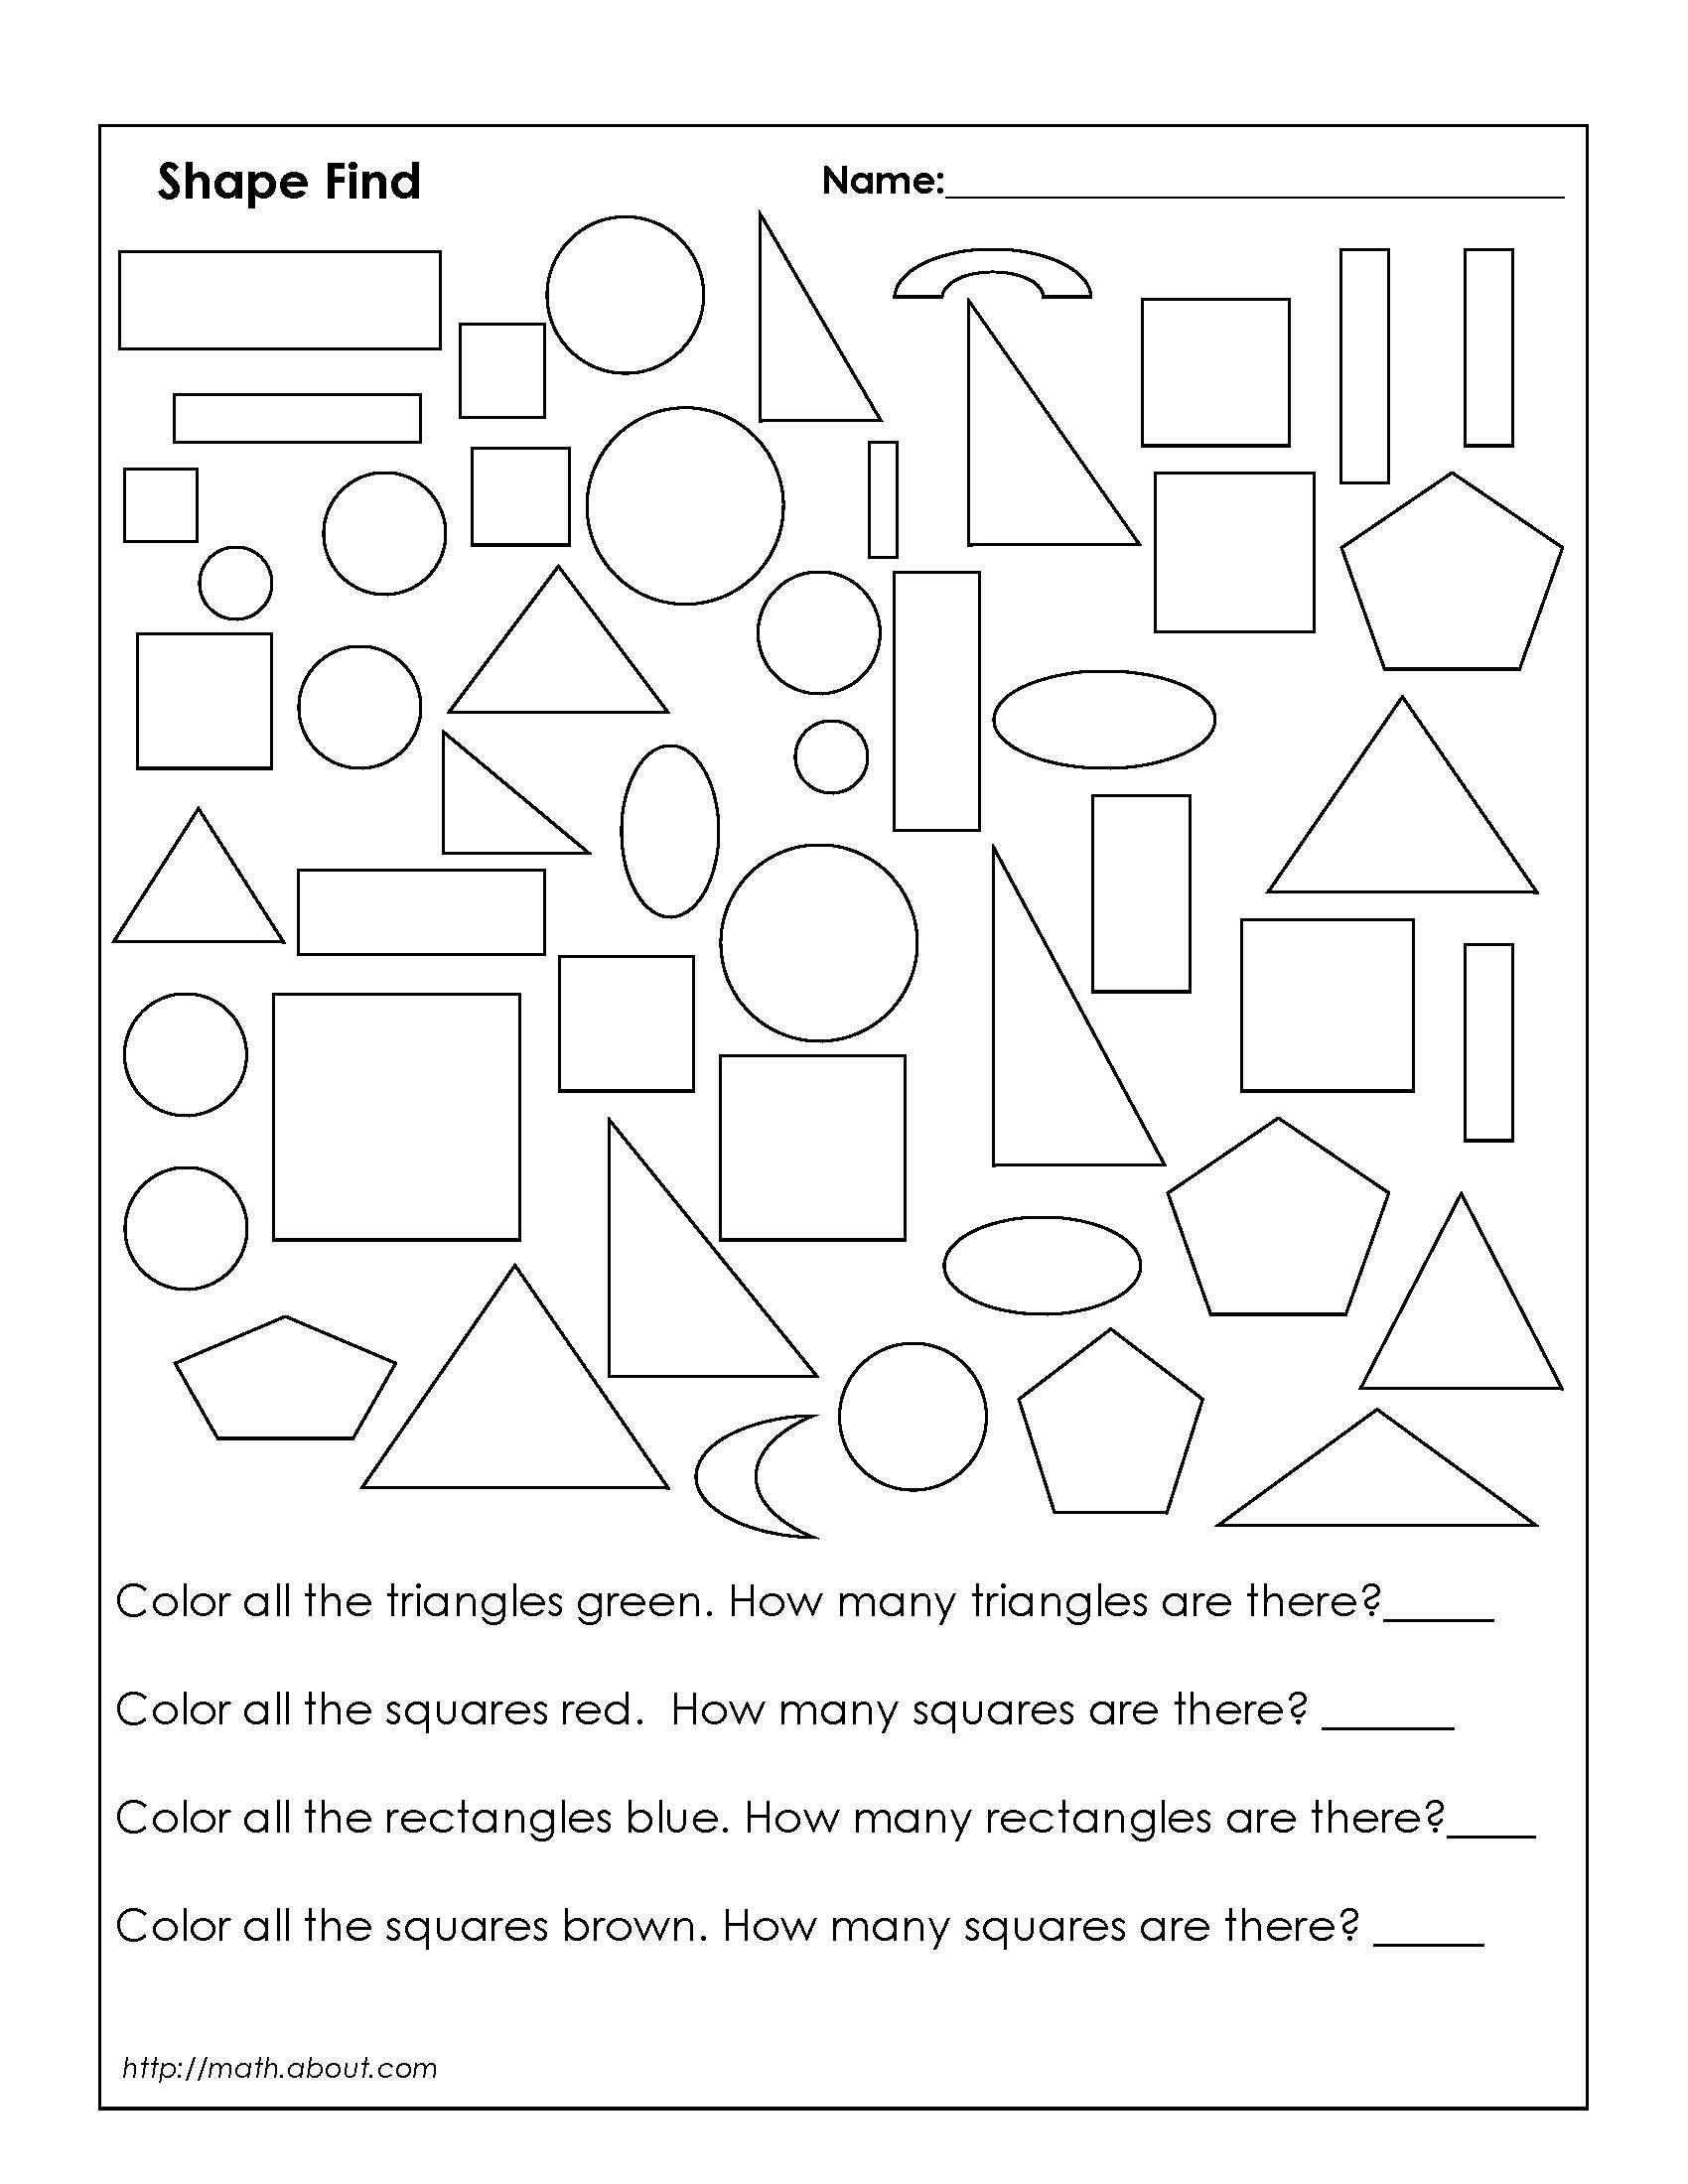 Shapes Worksheets 2nd Grade 18 Best Rectangles Triangles Worksheets Images On Best